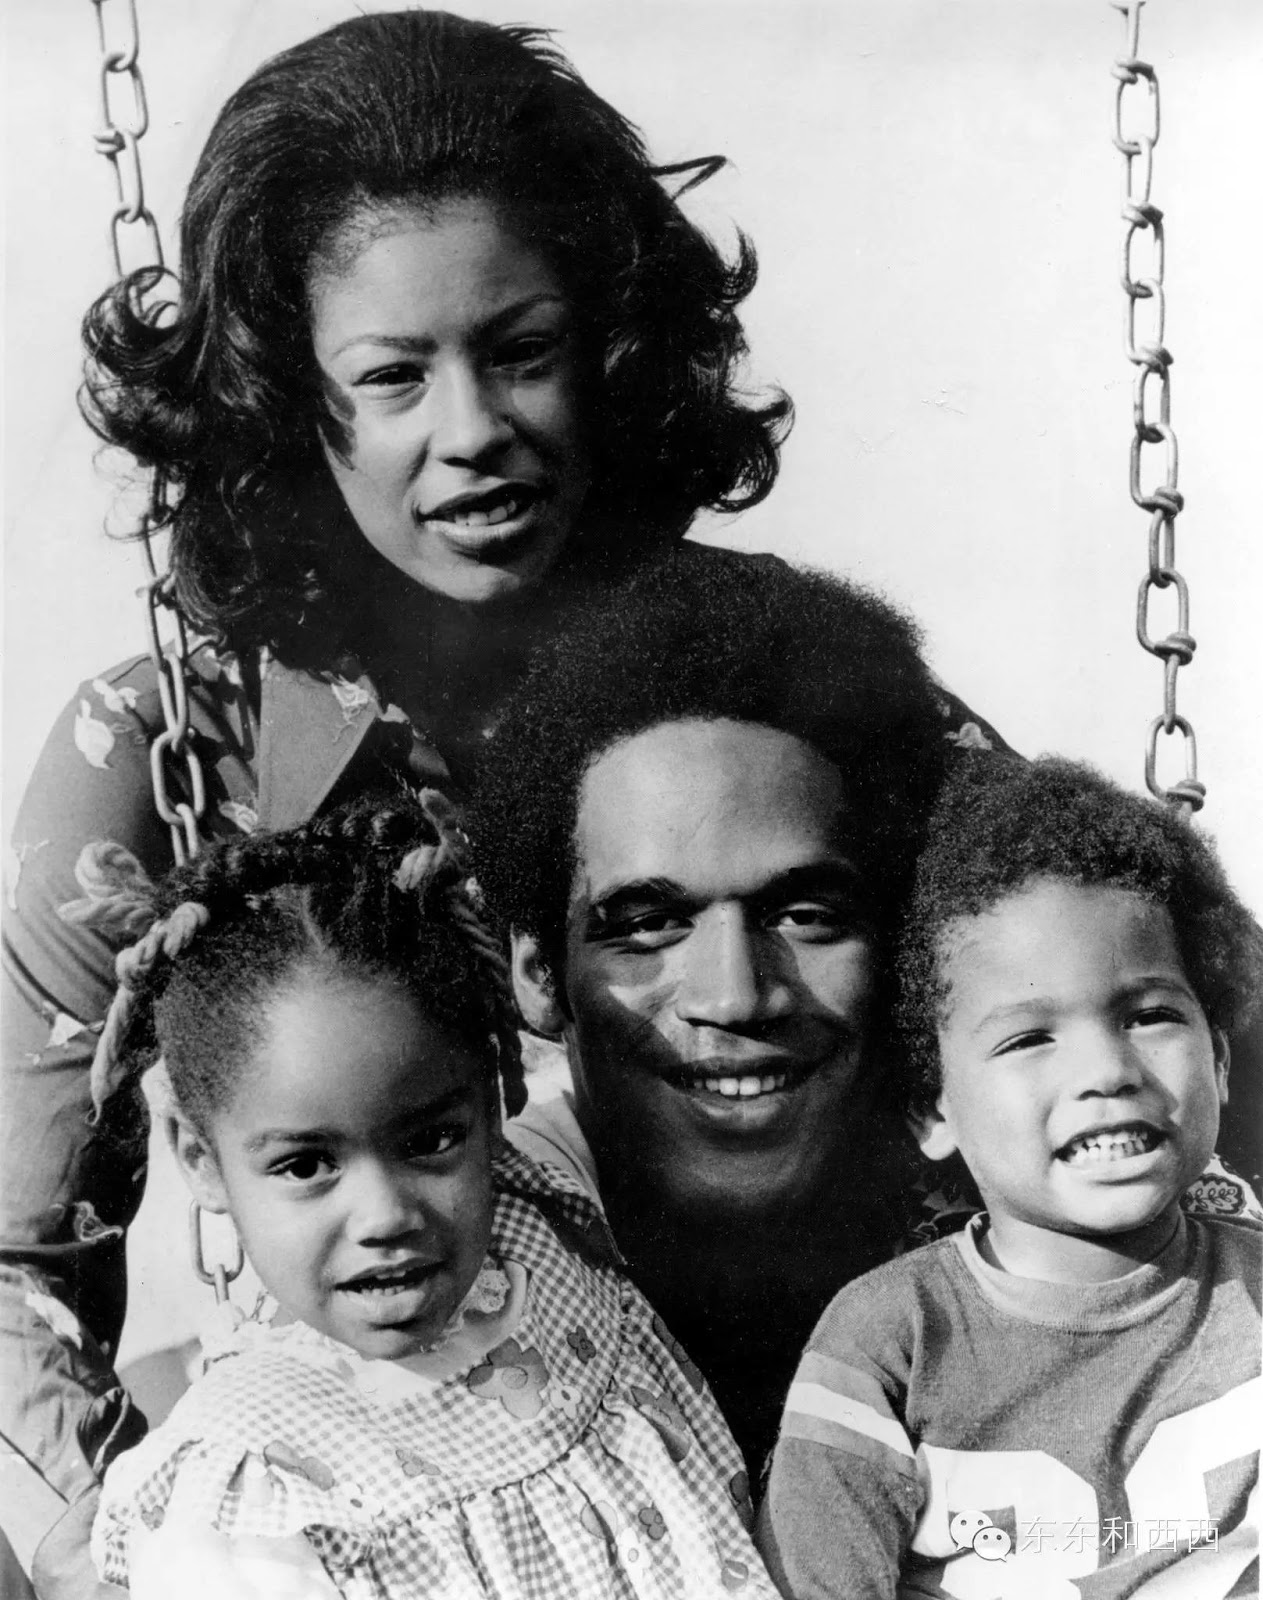 O.J. Simpson and his first wife Marguerite Whitely with their children Arnelle L. Simpson (born in 1968),  and Jason L. Simpson (b. 1970)